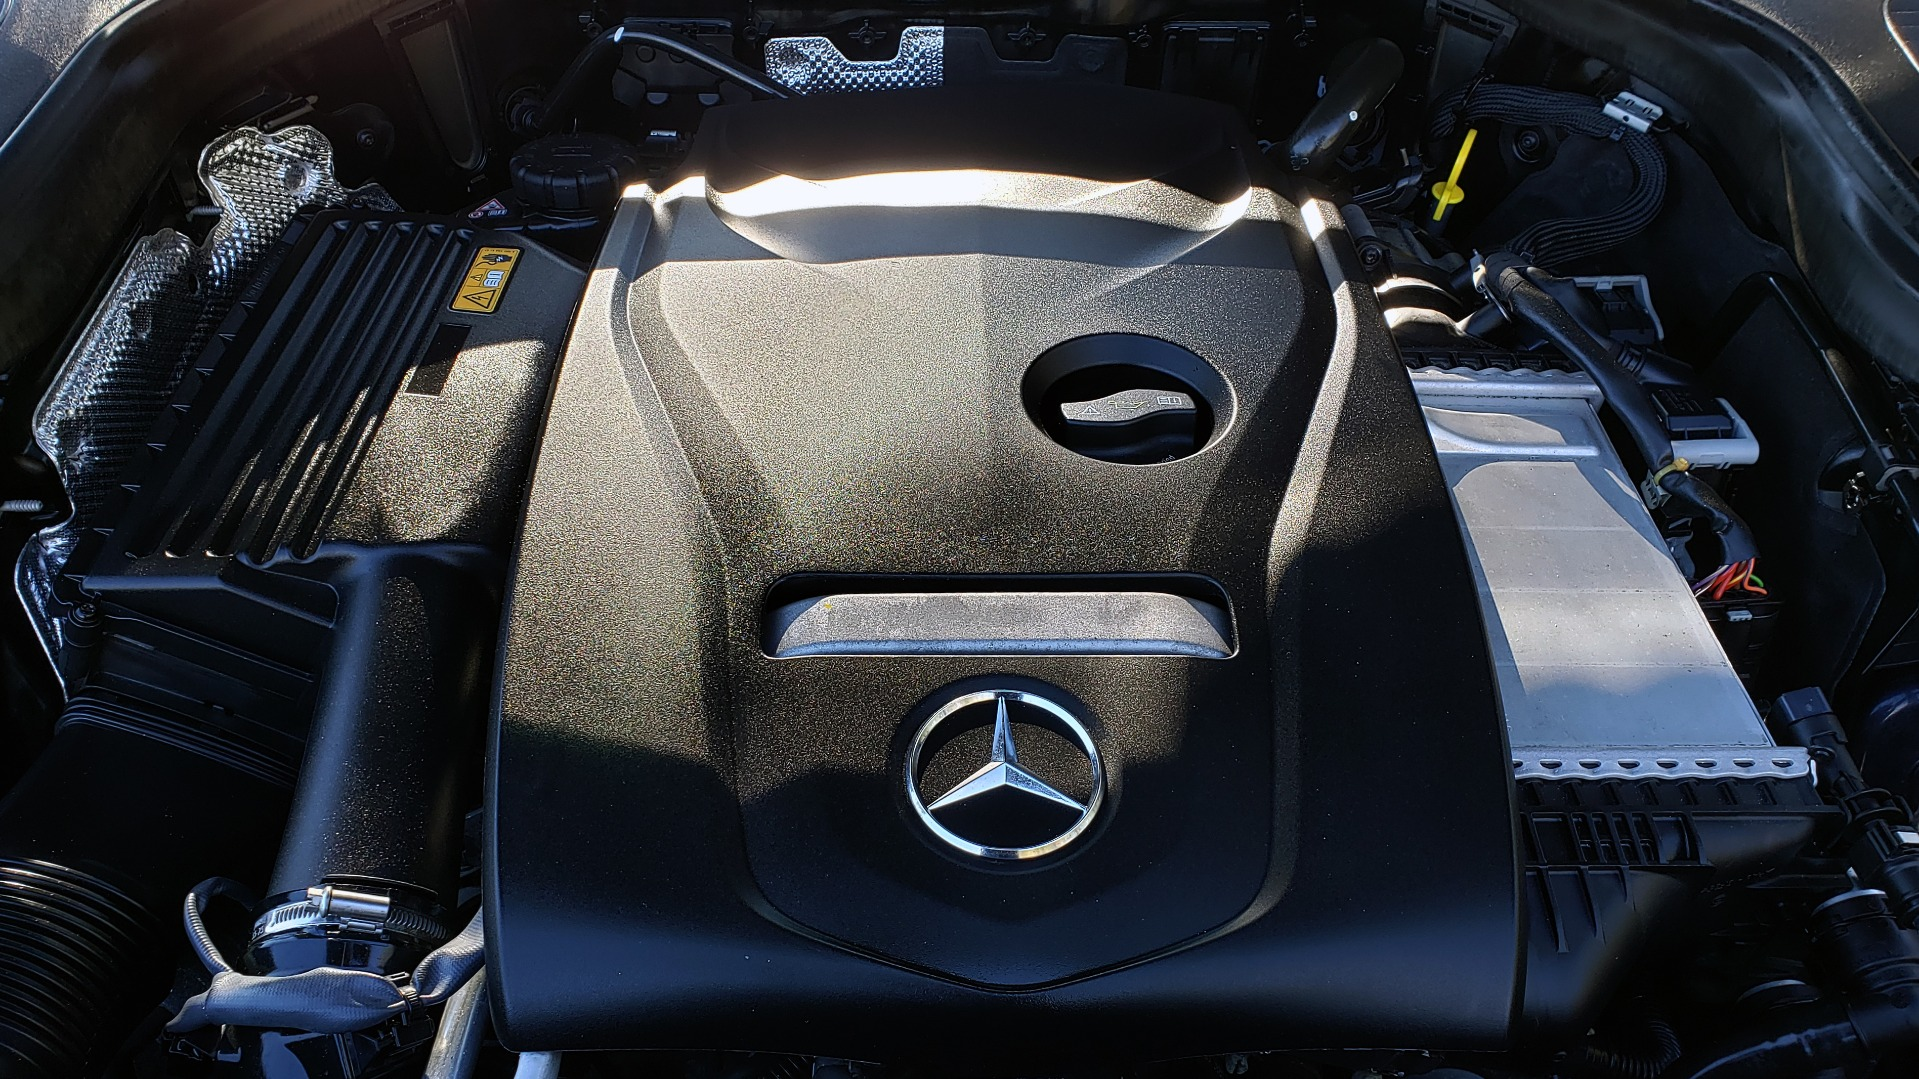 Used 2017 Mercedes-Benz GLC 300 4MATIC / PREM / NAV / KEYLESS-GO / SUNROOF / REARVIEW for sale Sold at Formula Imports in Charlotte NC 28227 17